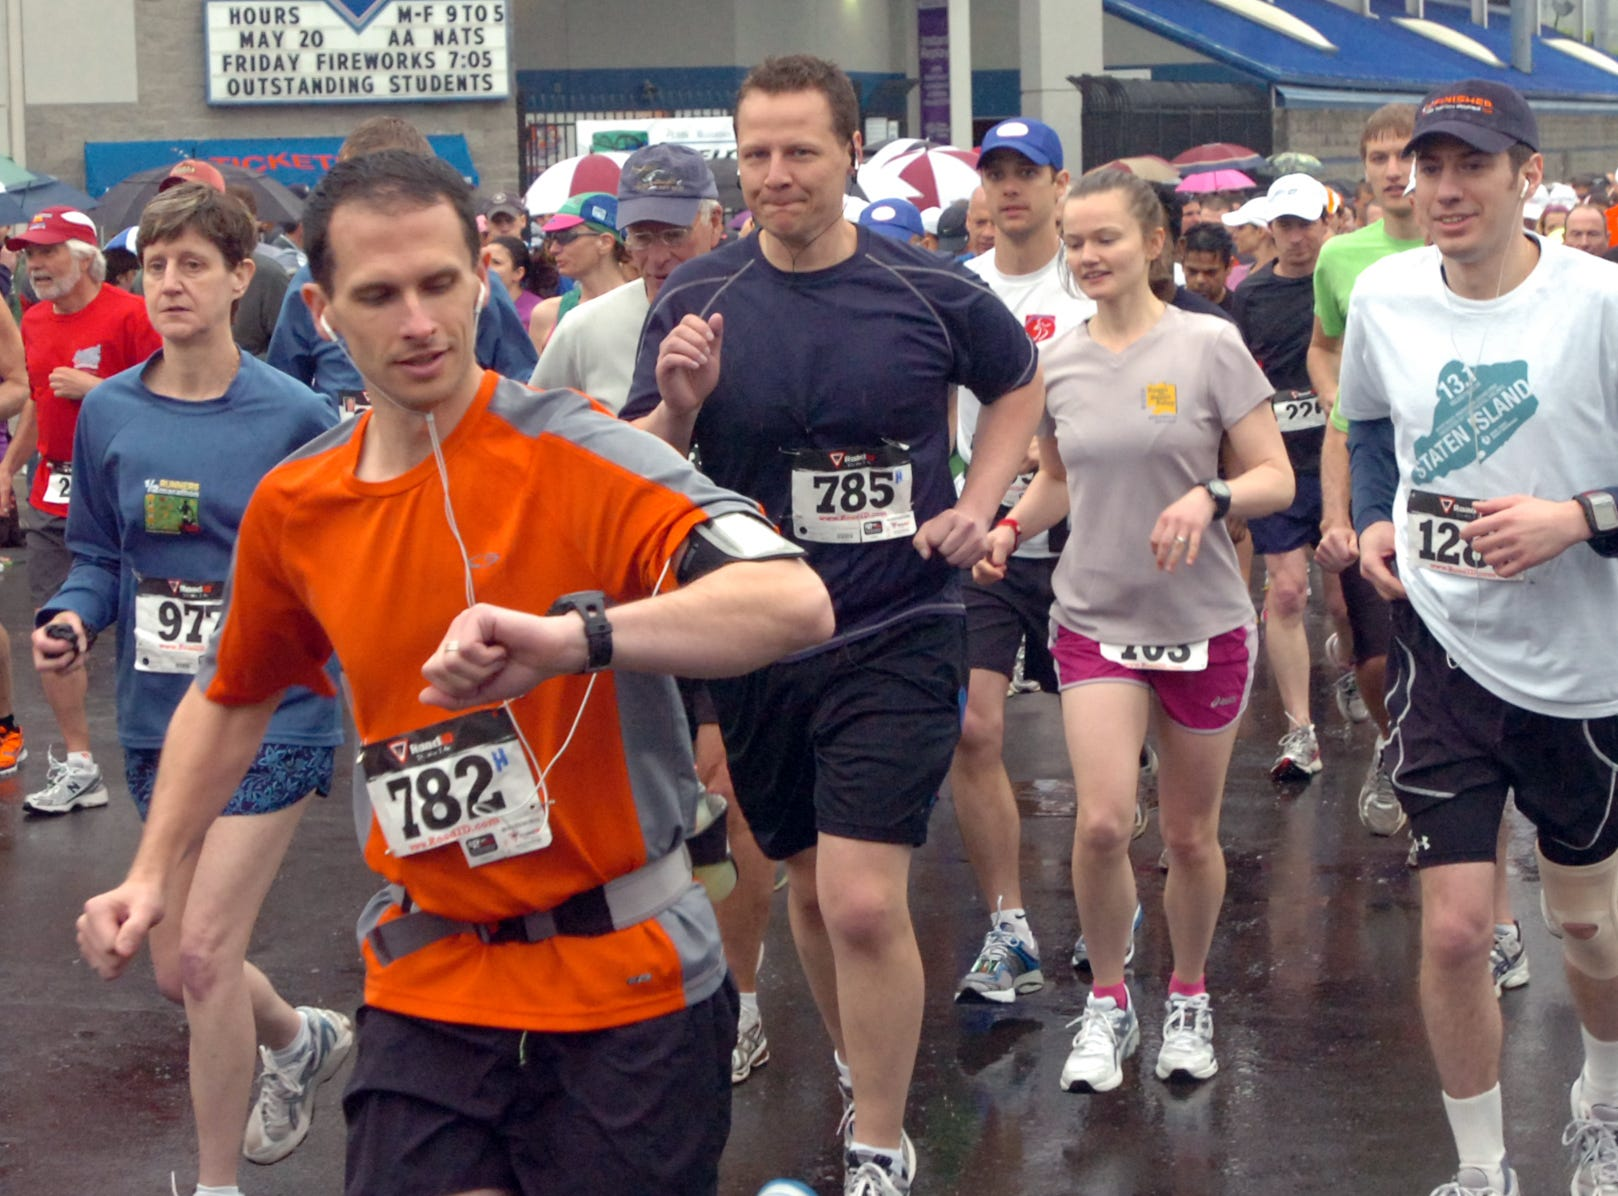 2011: The inaugural Greater Binghamton Bridge Run Half Marathon & 5K races were held Sunday on a course through streets and over bridges in downtown Binghamton, starting and ending at NYSEG Stadium.